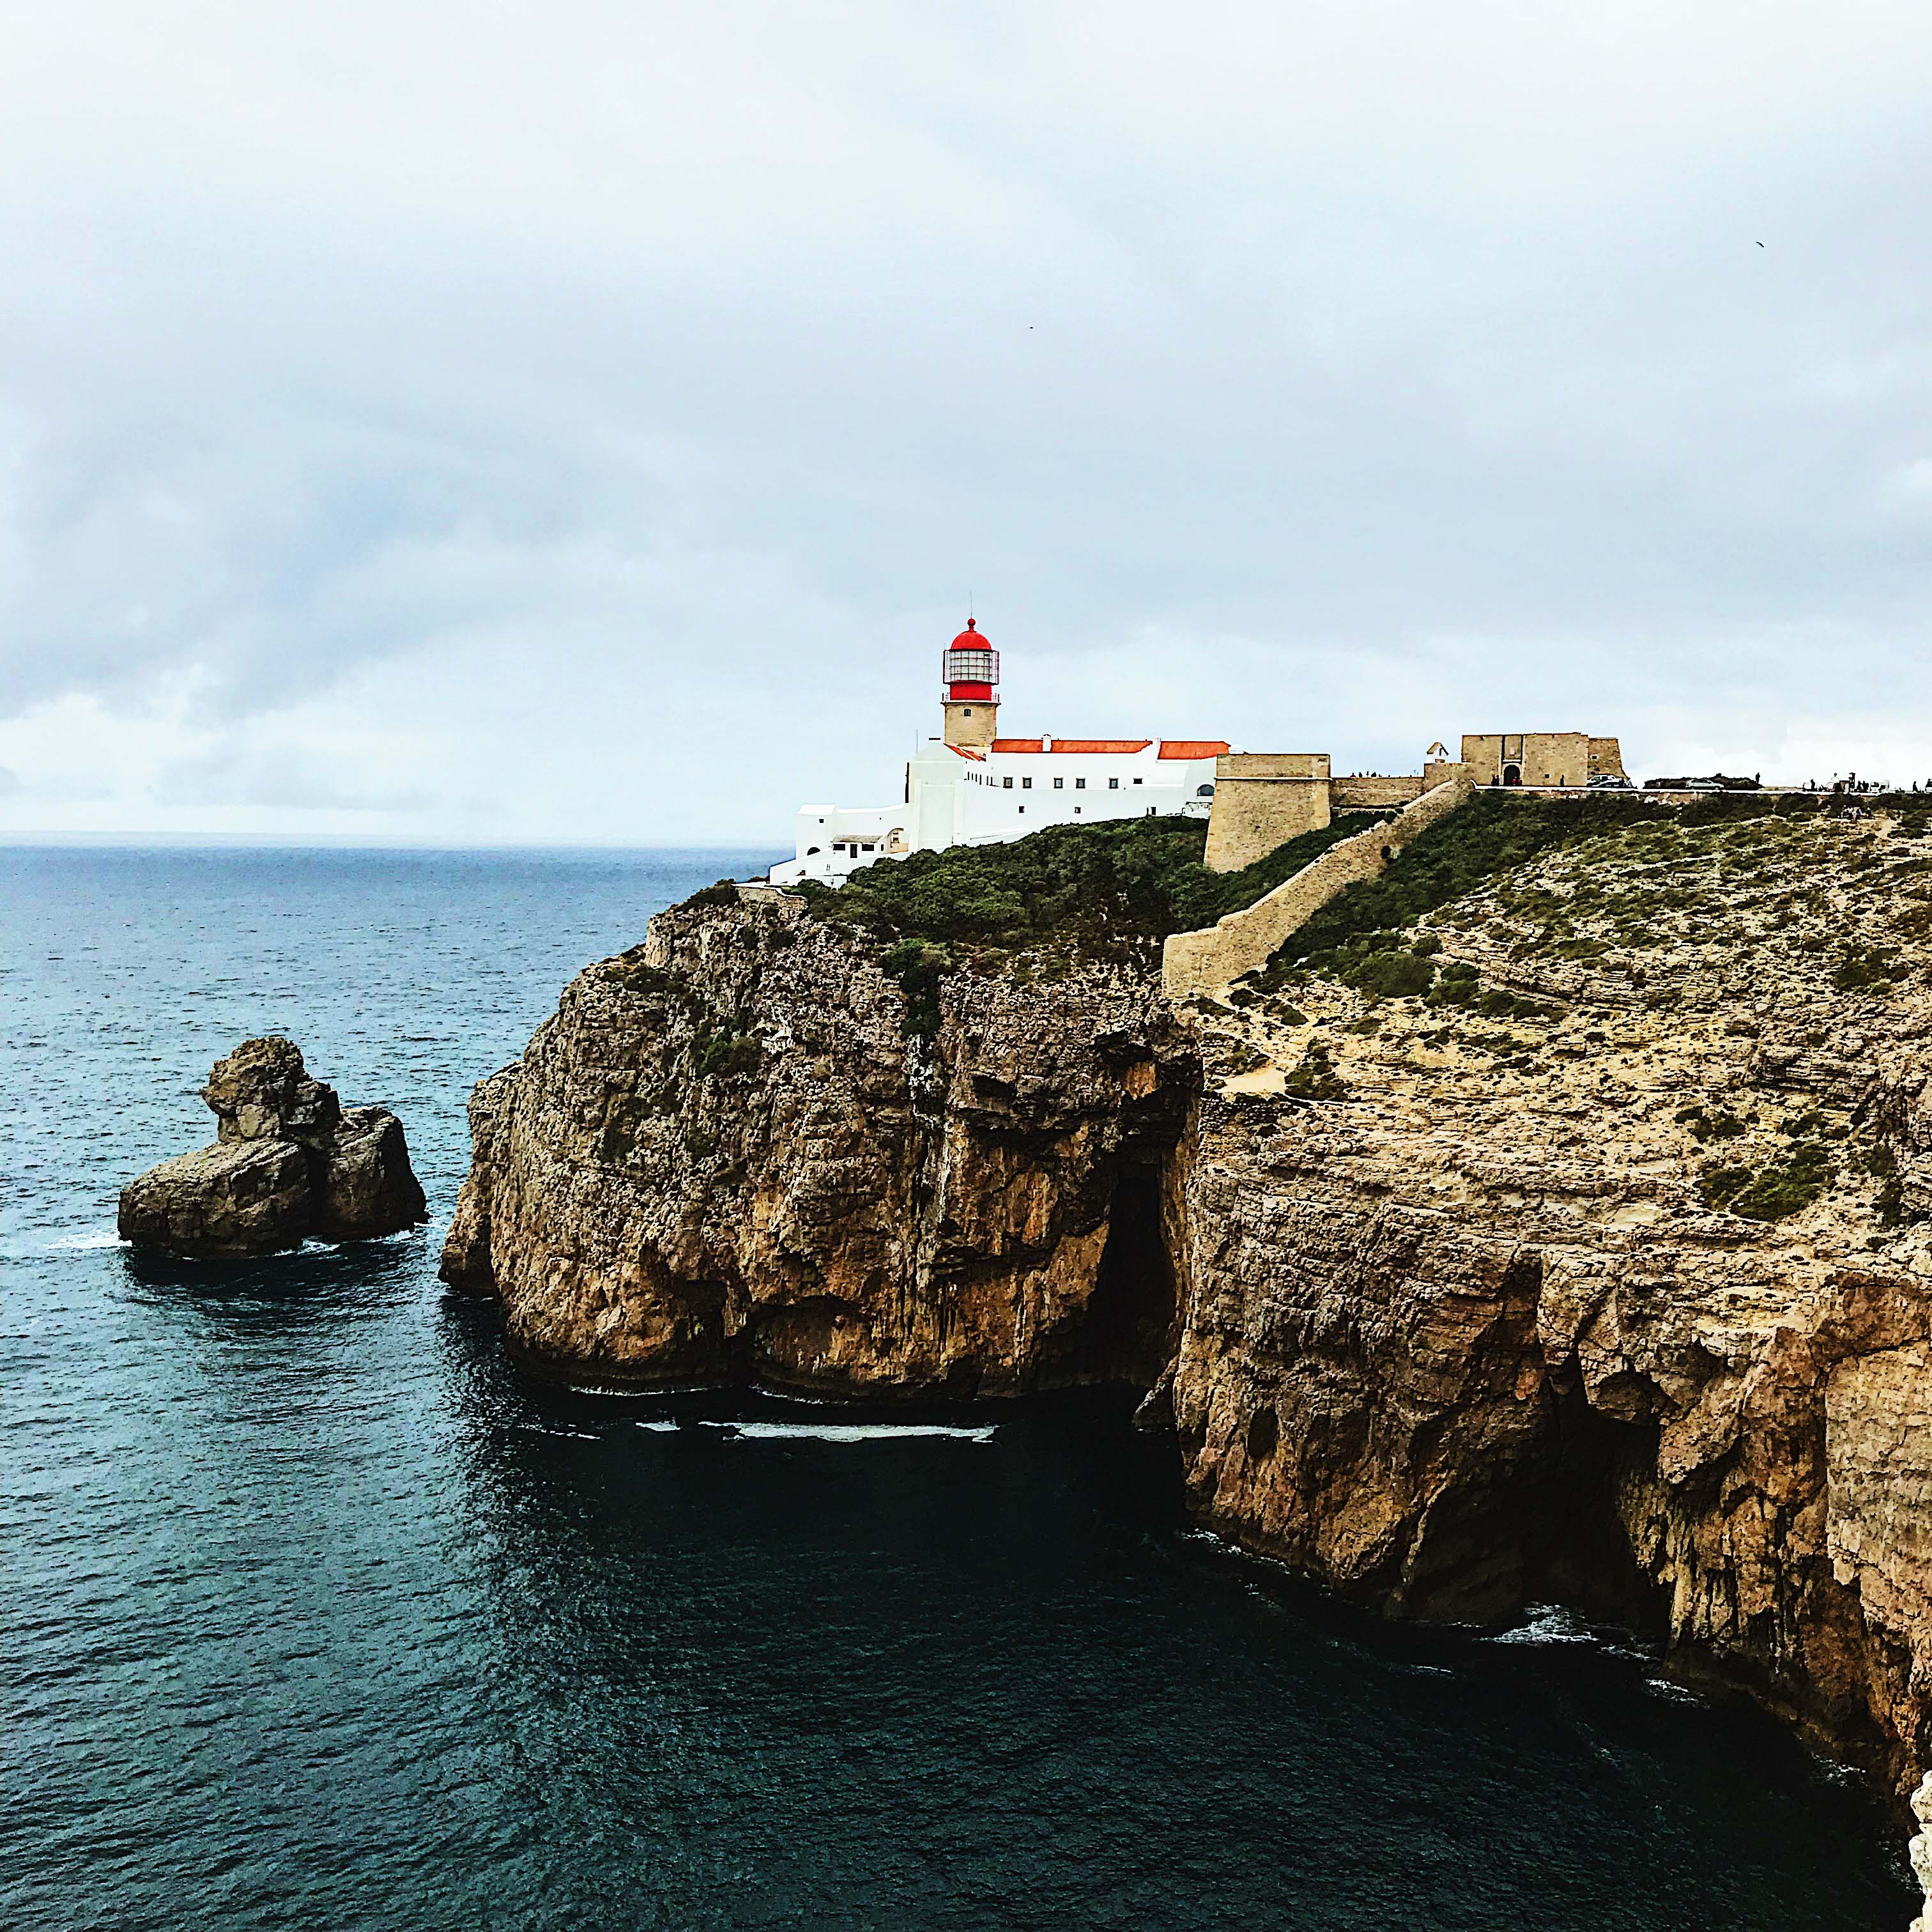 The Lighthouse of Cape St Vincent